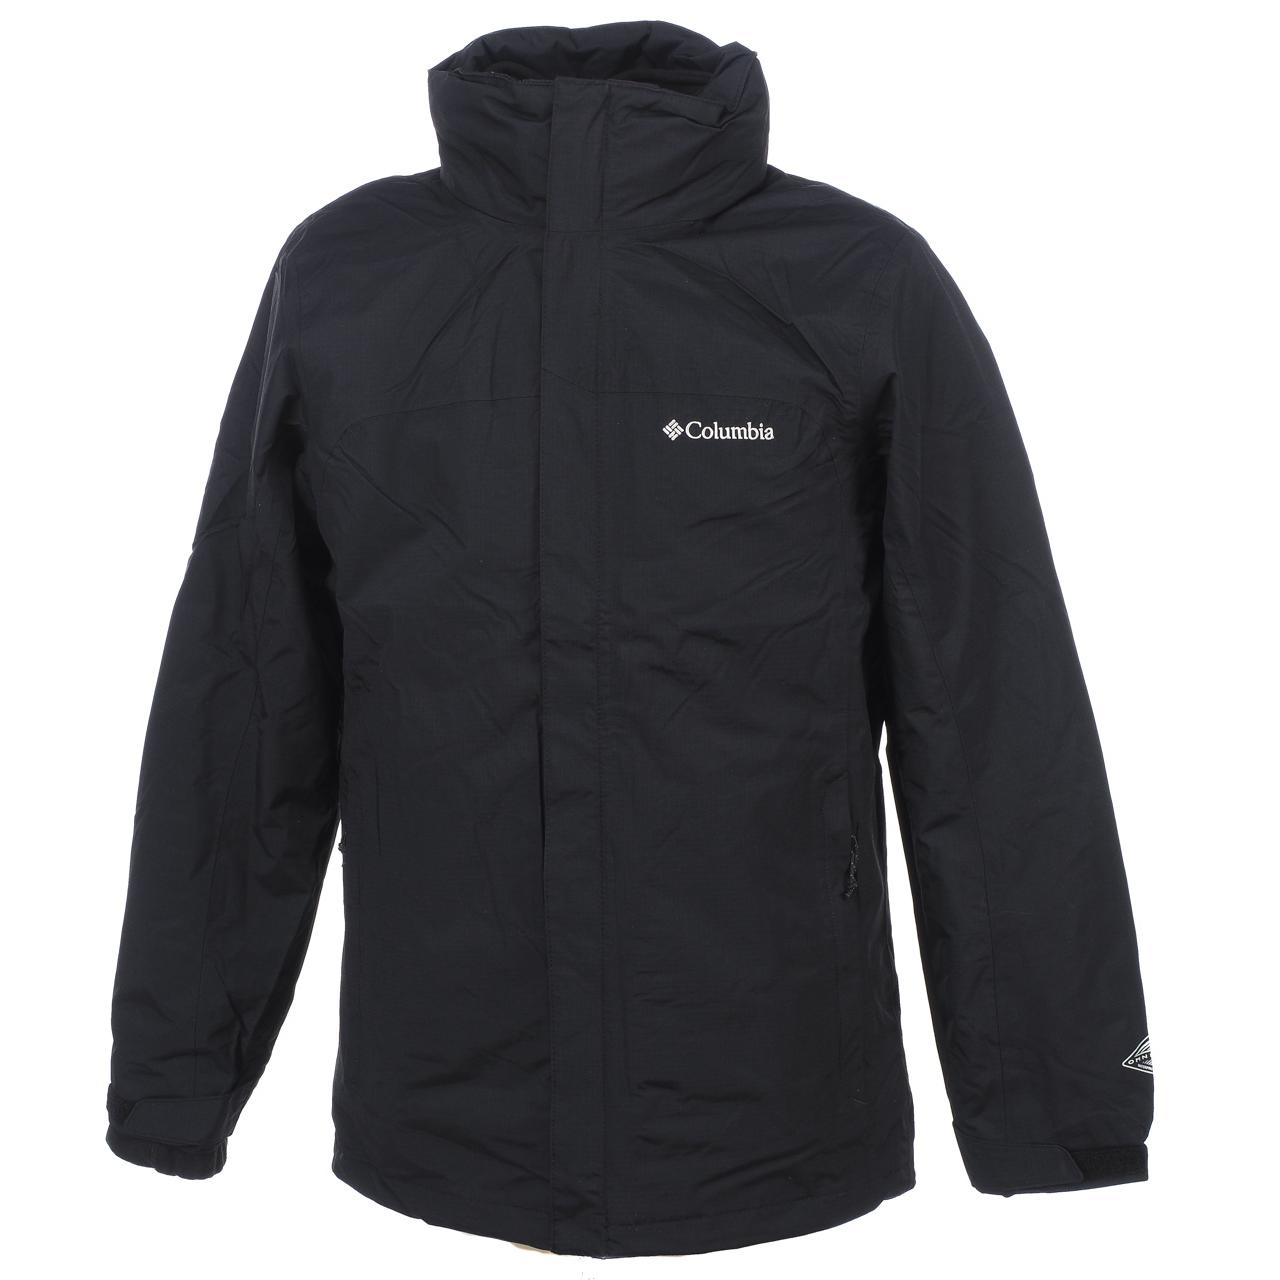 Jackets-3-in-1-Columbia-Mission-Air-Black-Black-41300-New